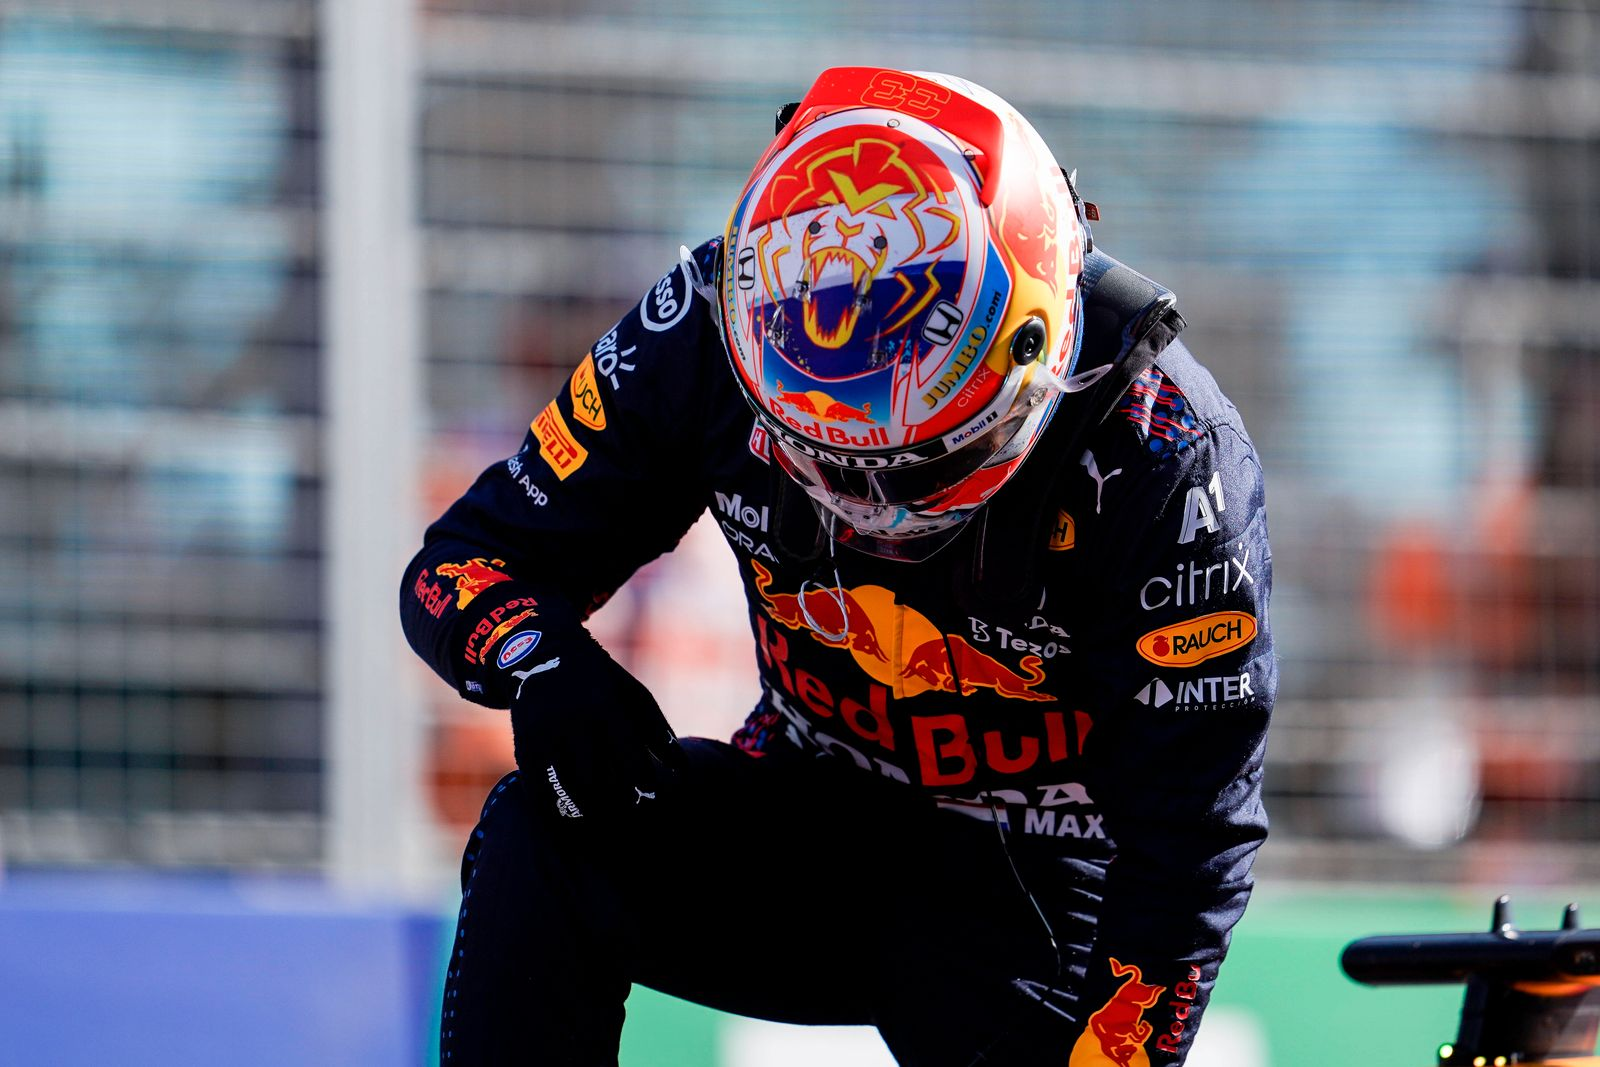 September 4, 2021, Zandvoort, The Netherlands: MAX VERSTAPPEN of the Netherlands and Red Bull Racing is seen after claim